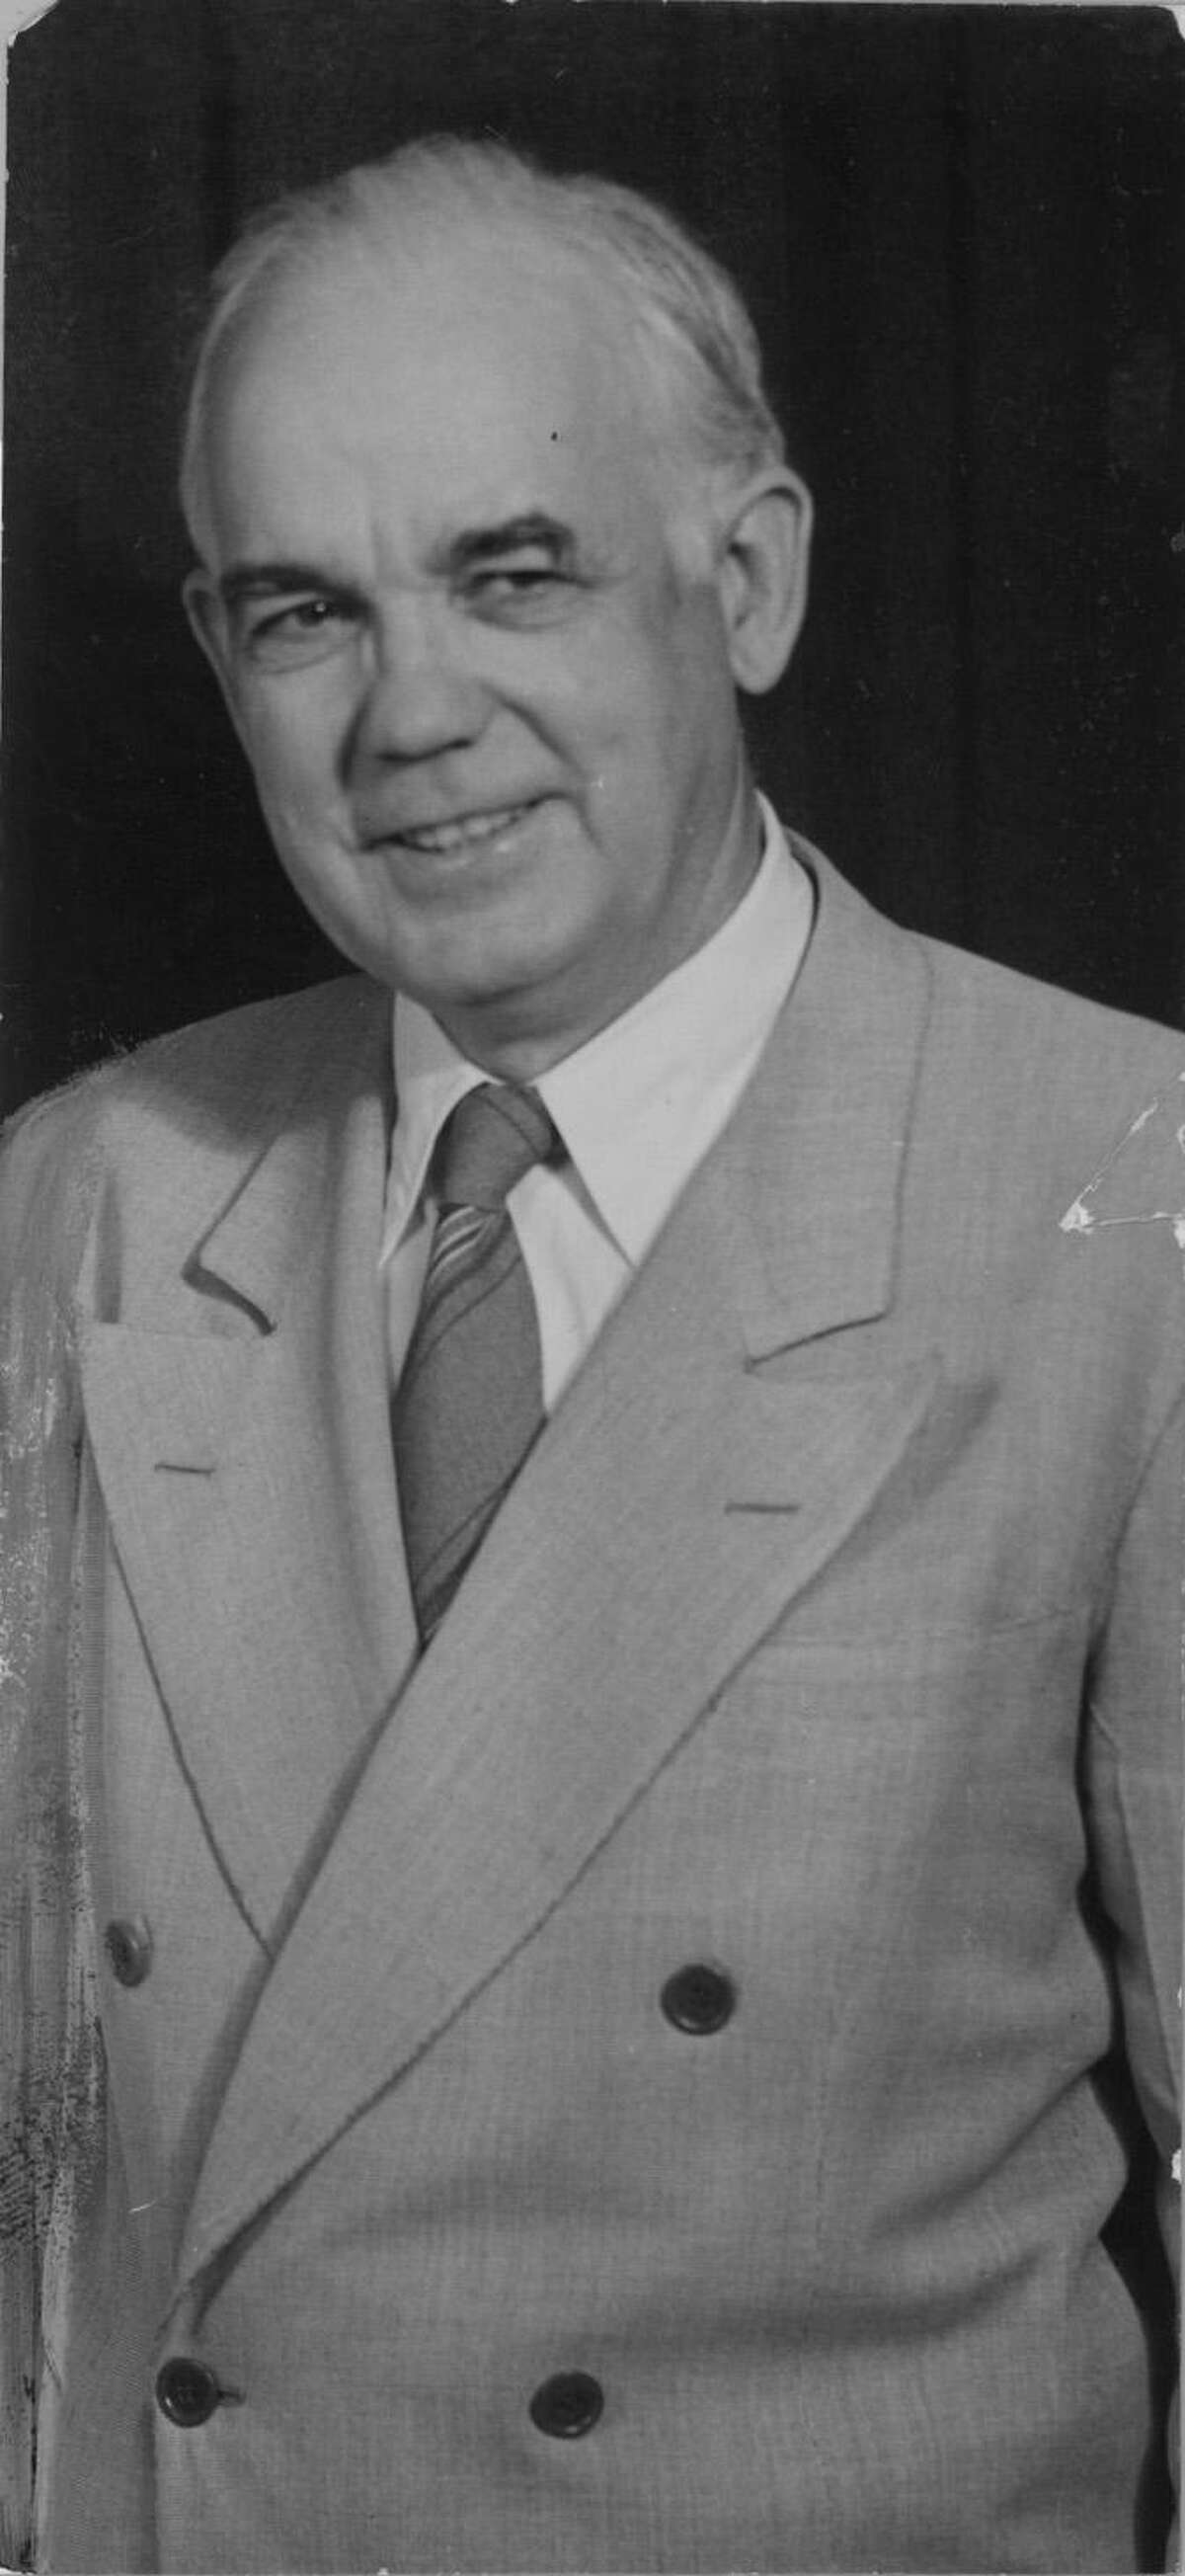 Oscar Holcombe was elected to his first term as Houston mayor in 1920 and served 11 terms over 37 years. He became a foe of the KKK after attending one of their meetings.